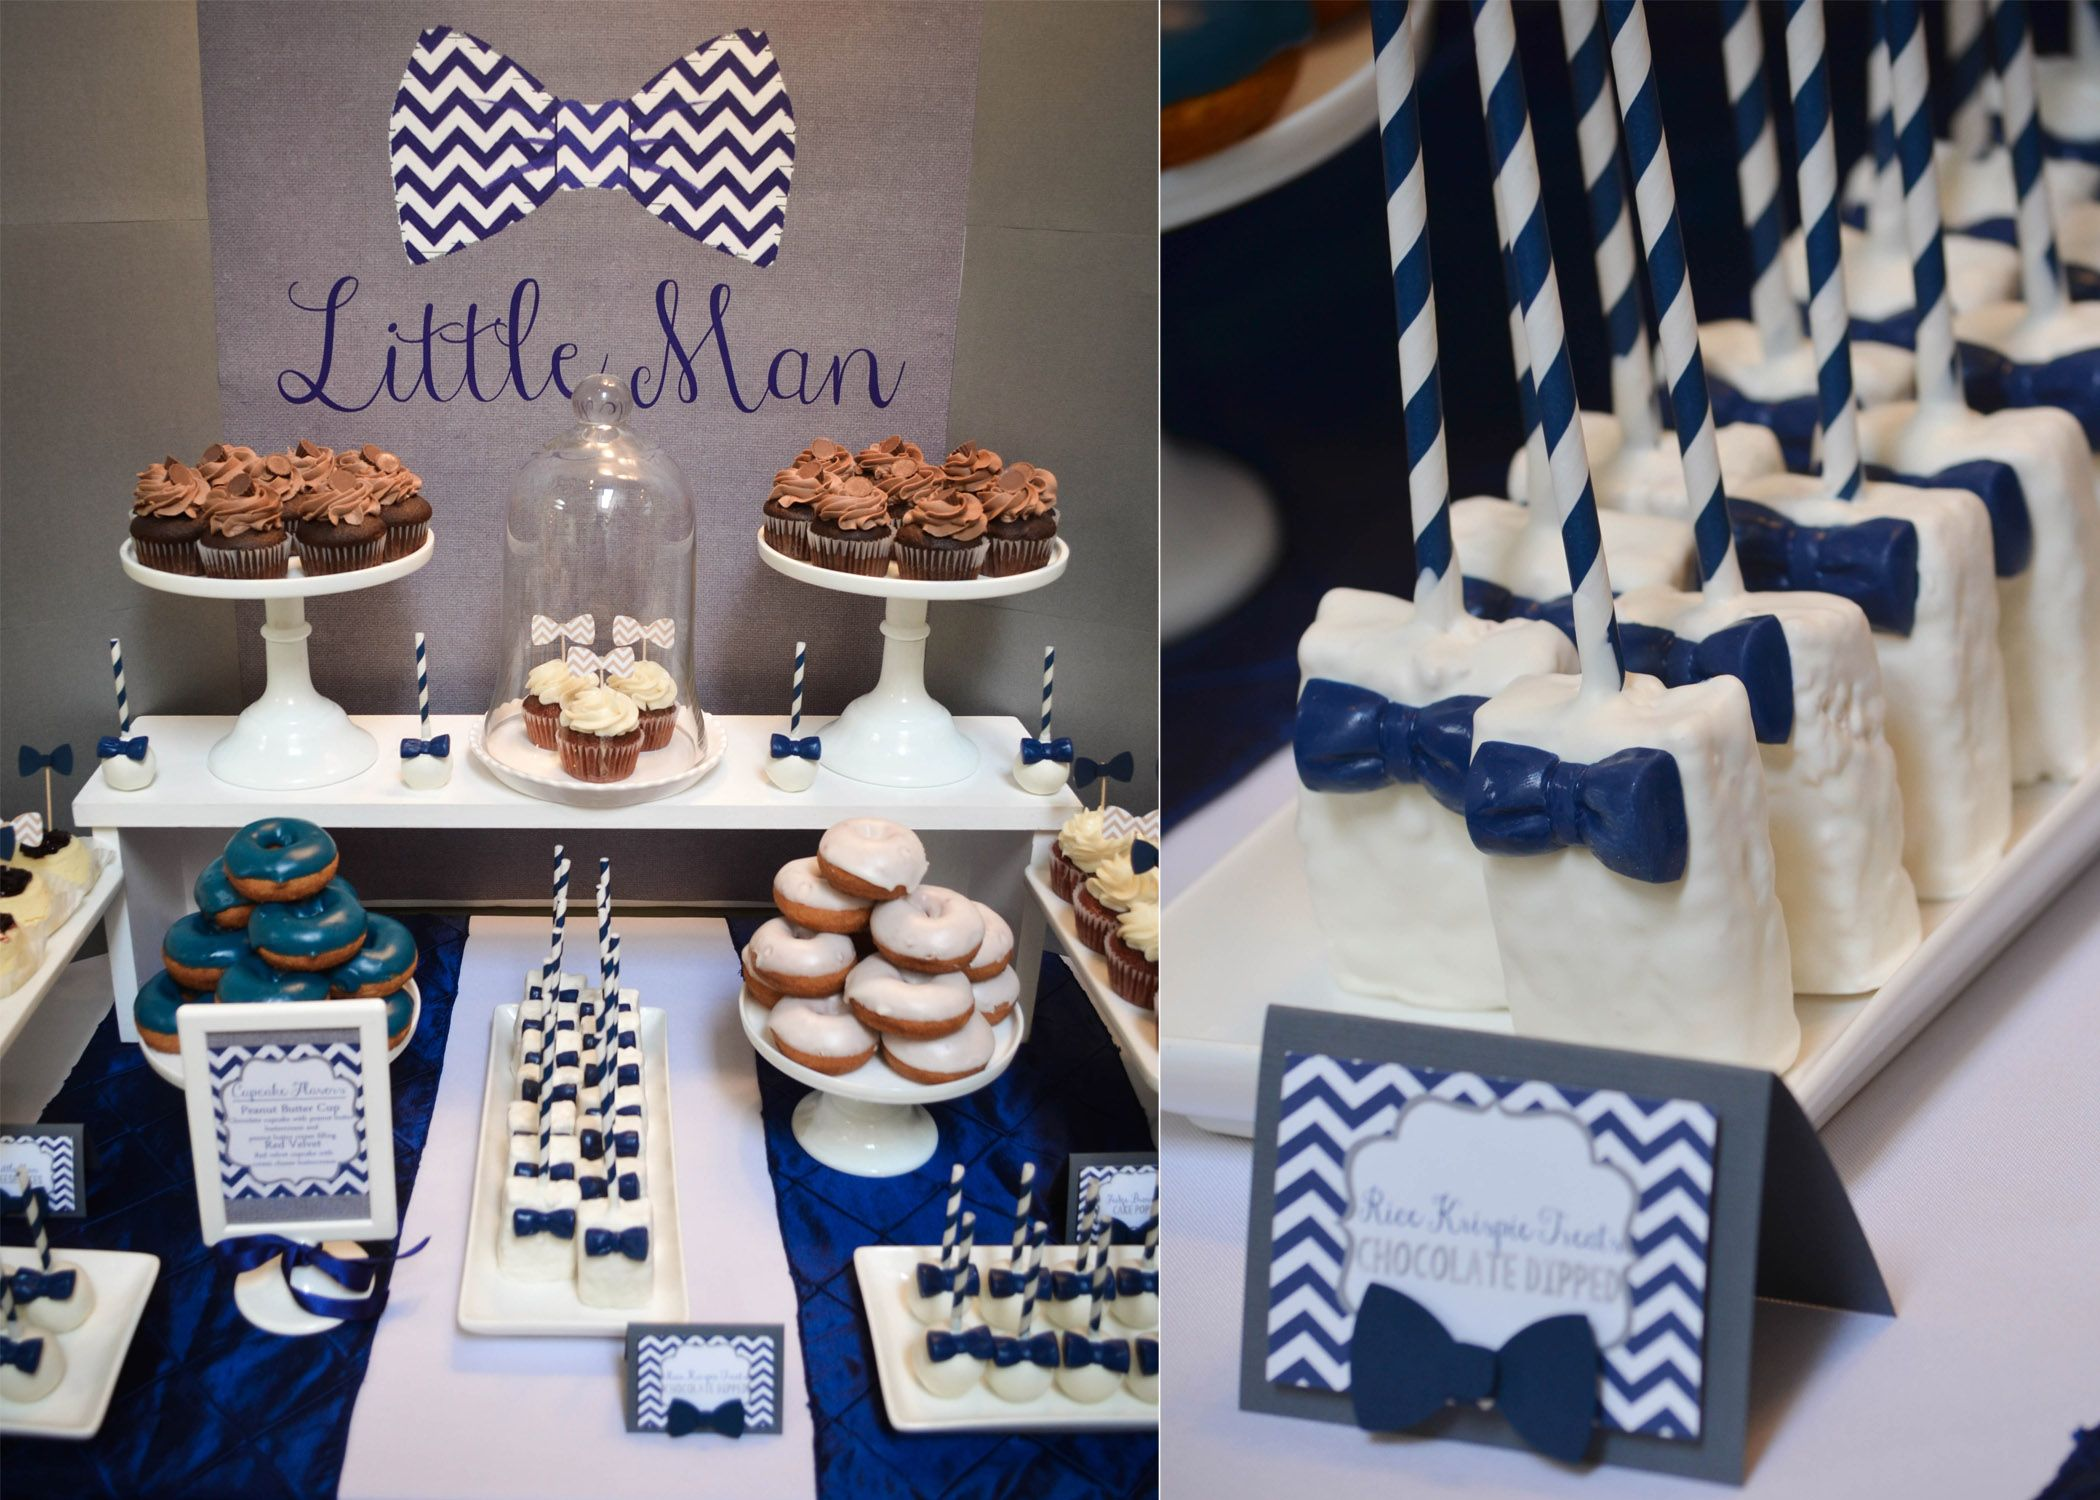 Our Little Man  BowTie Baby Shower Dessert Table  Baby shower